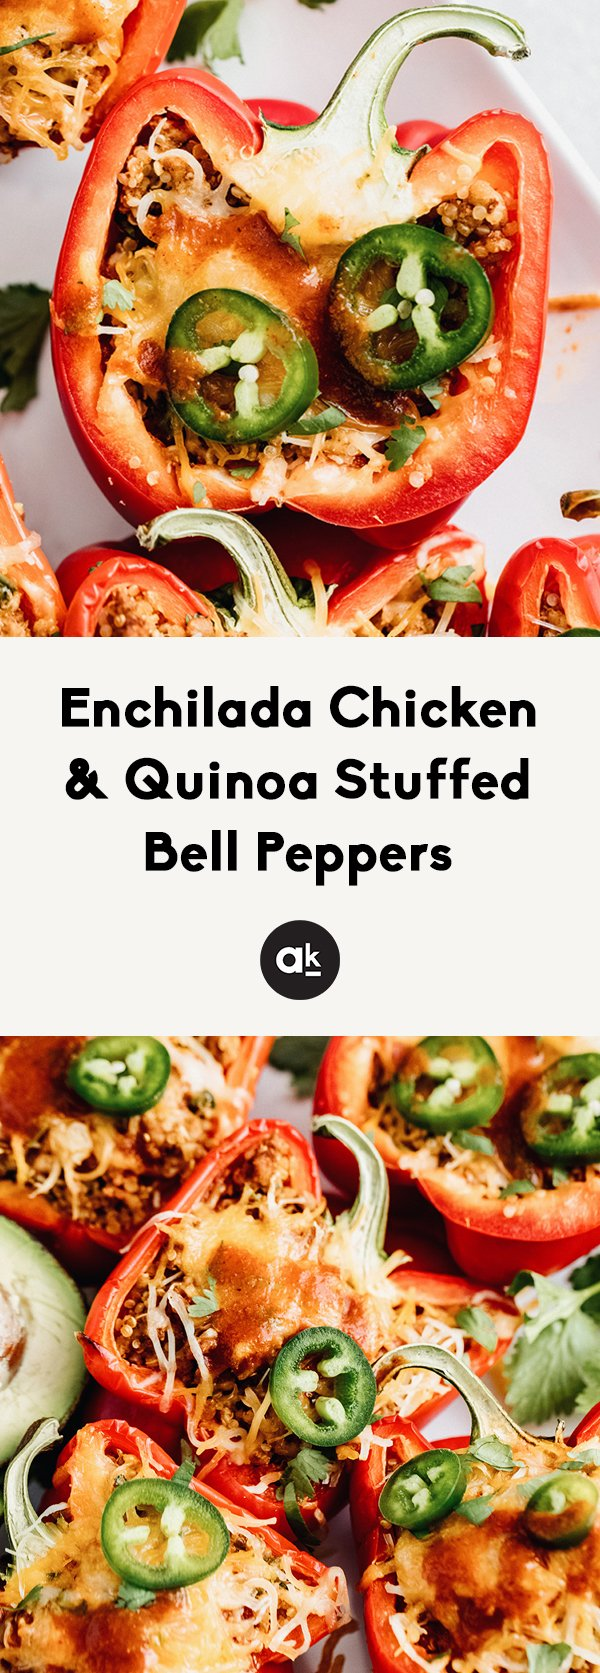 Delicious, protein-packed enchilada chicken & quinoa stuffed bell peppers with melty cheese and fresh jalapeño. This easy weeknight dinner recipe is loaded with incredible spices and perfect for meal prep!